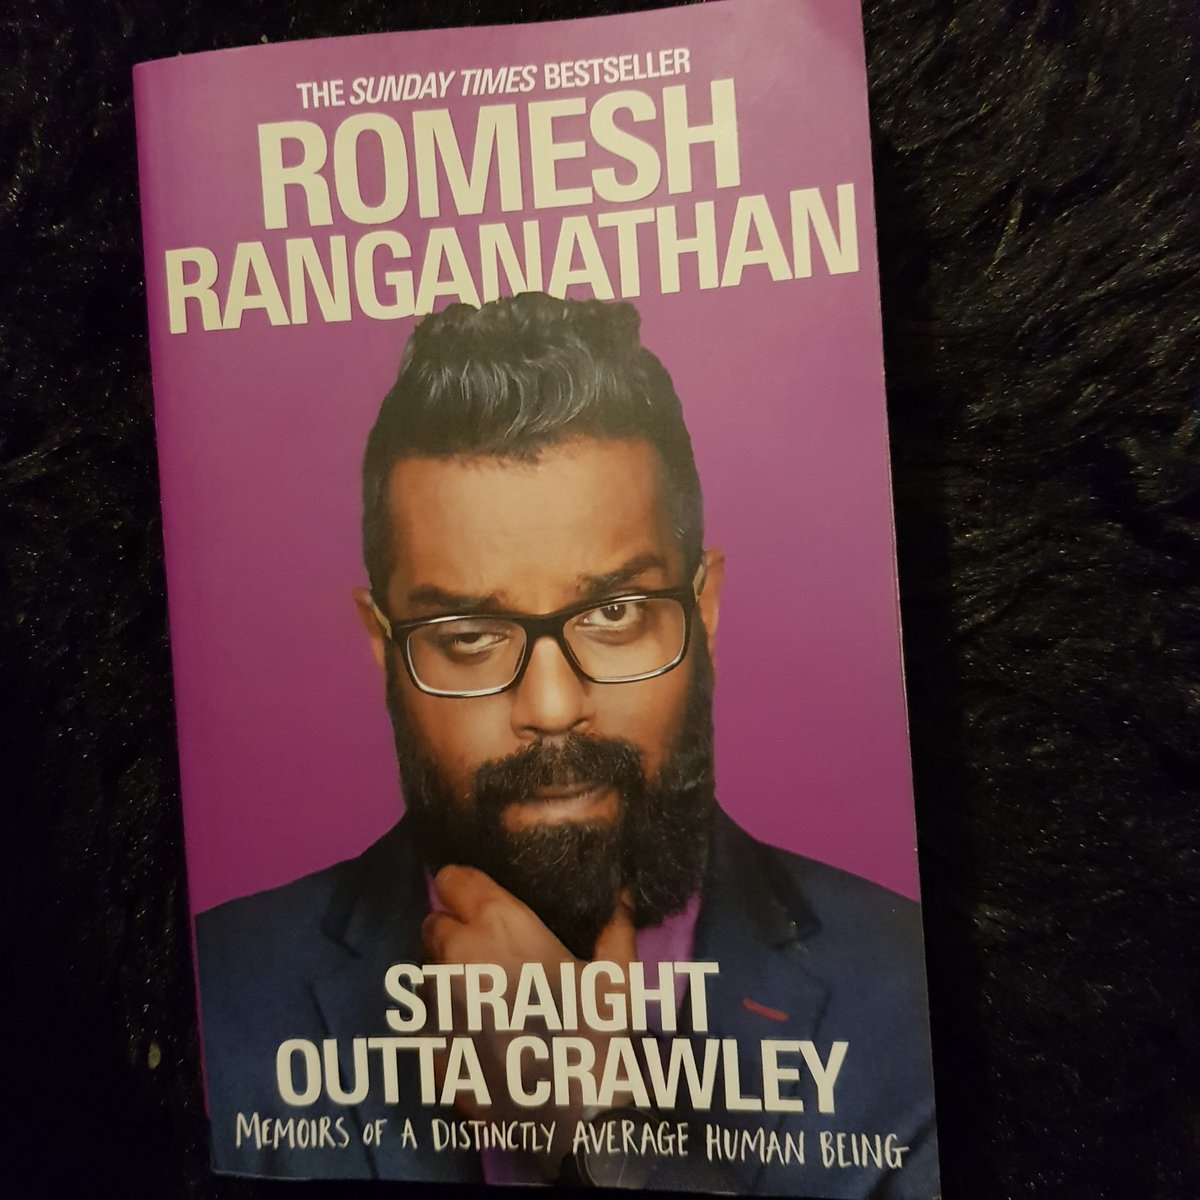 Just finished this on my lunch break and then find out he's bringing out another book next month. Will wait on some xmas book vouchers for that @RomeshRanga Hope you get that part in Coming to America 2! https://t.co/QSPMr4nuNw